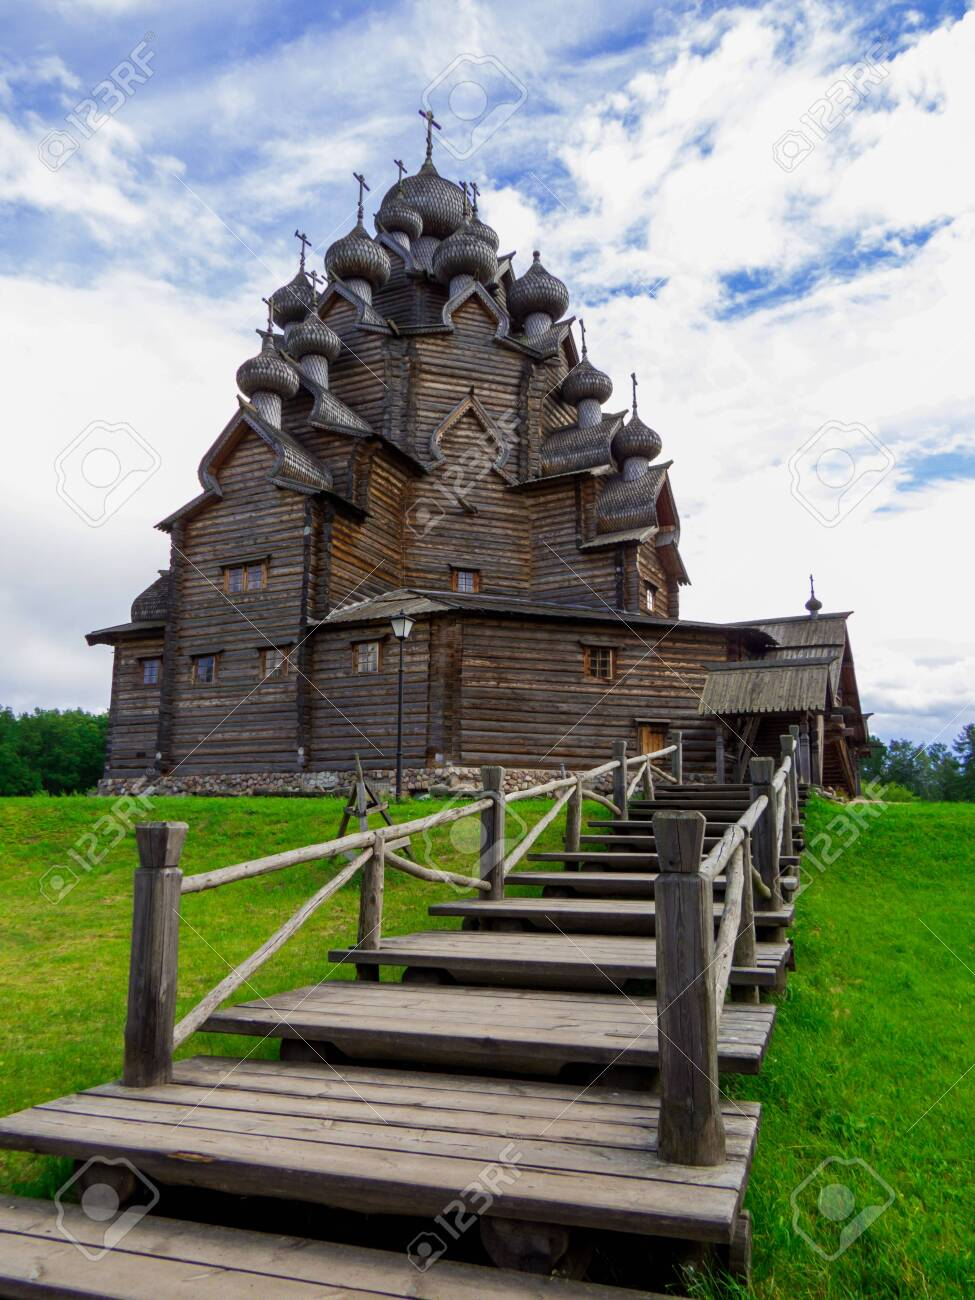 View of the wooden Church of the Intercession of the Holy Virgin in St. Petersburg, Russia - 151391730